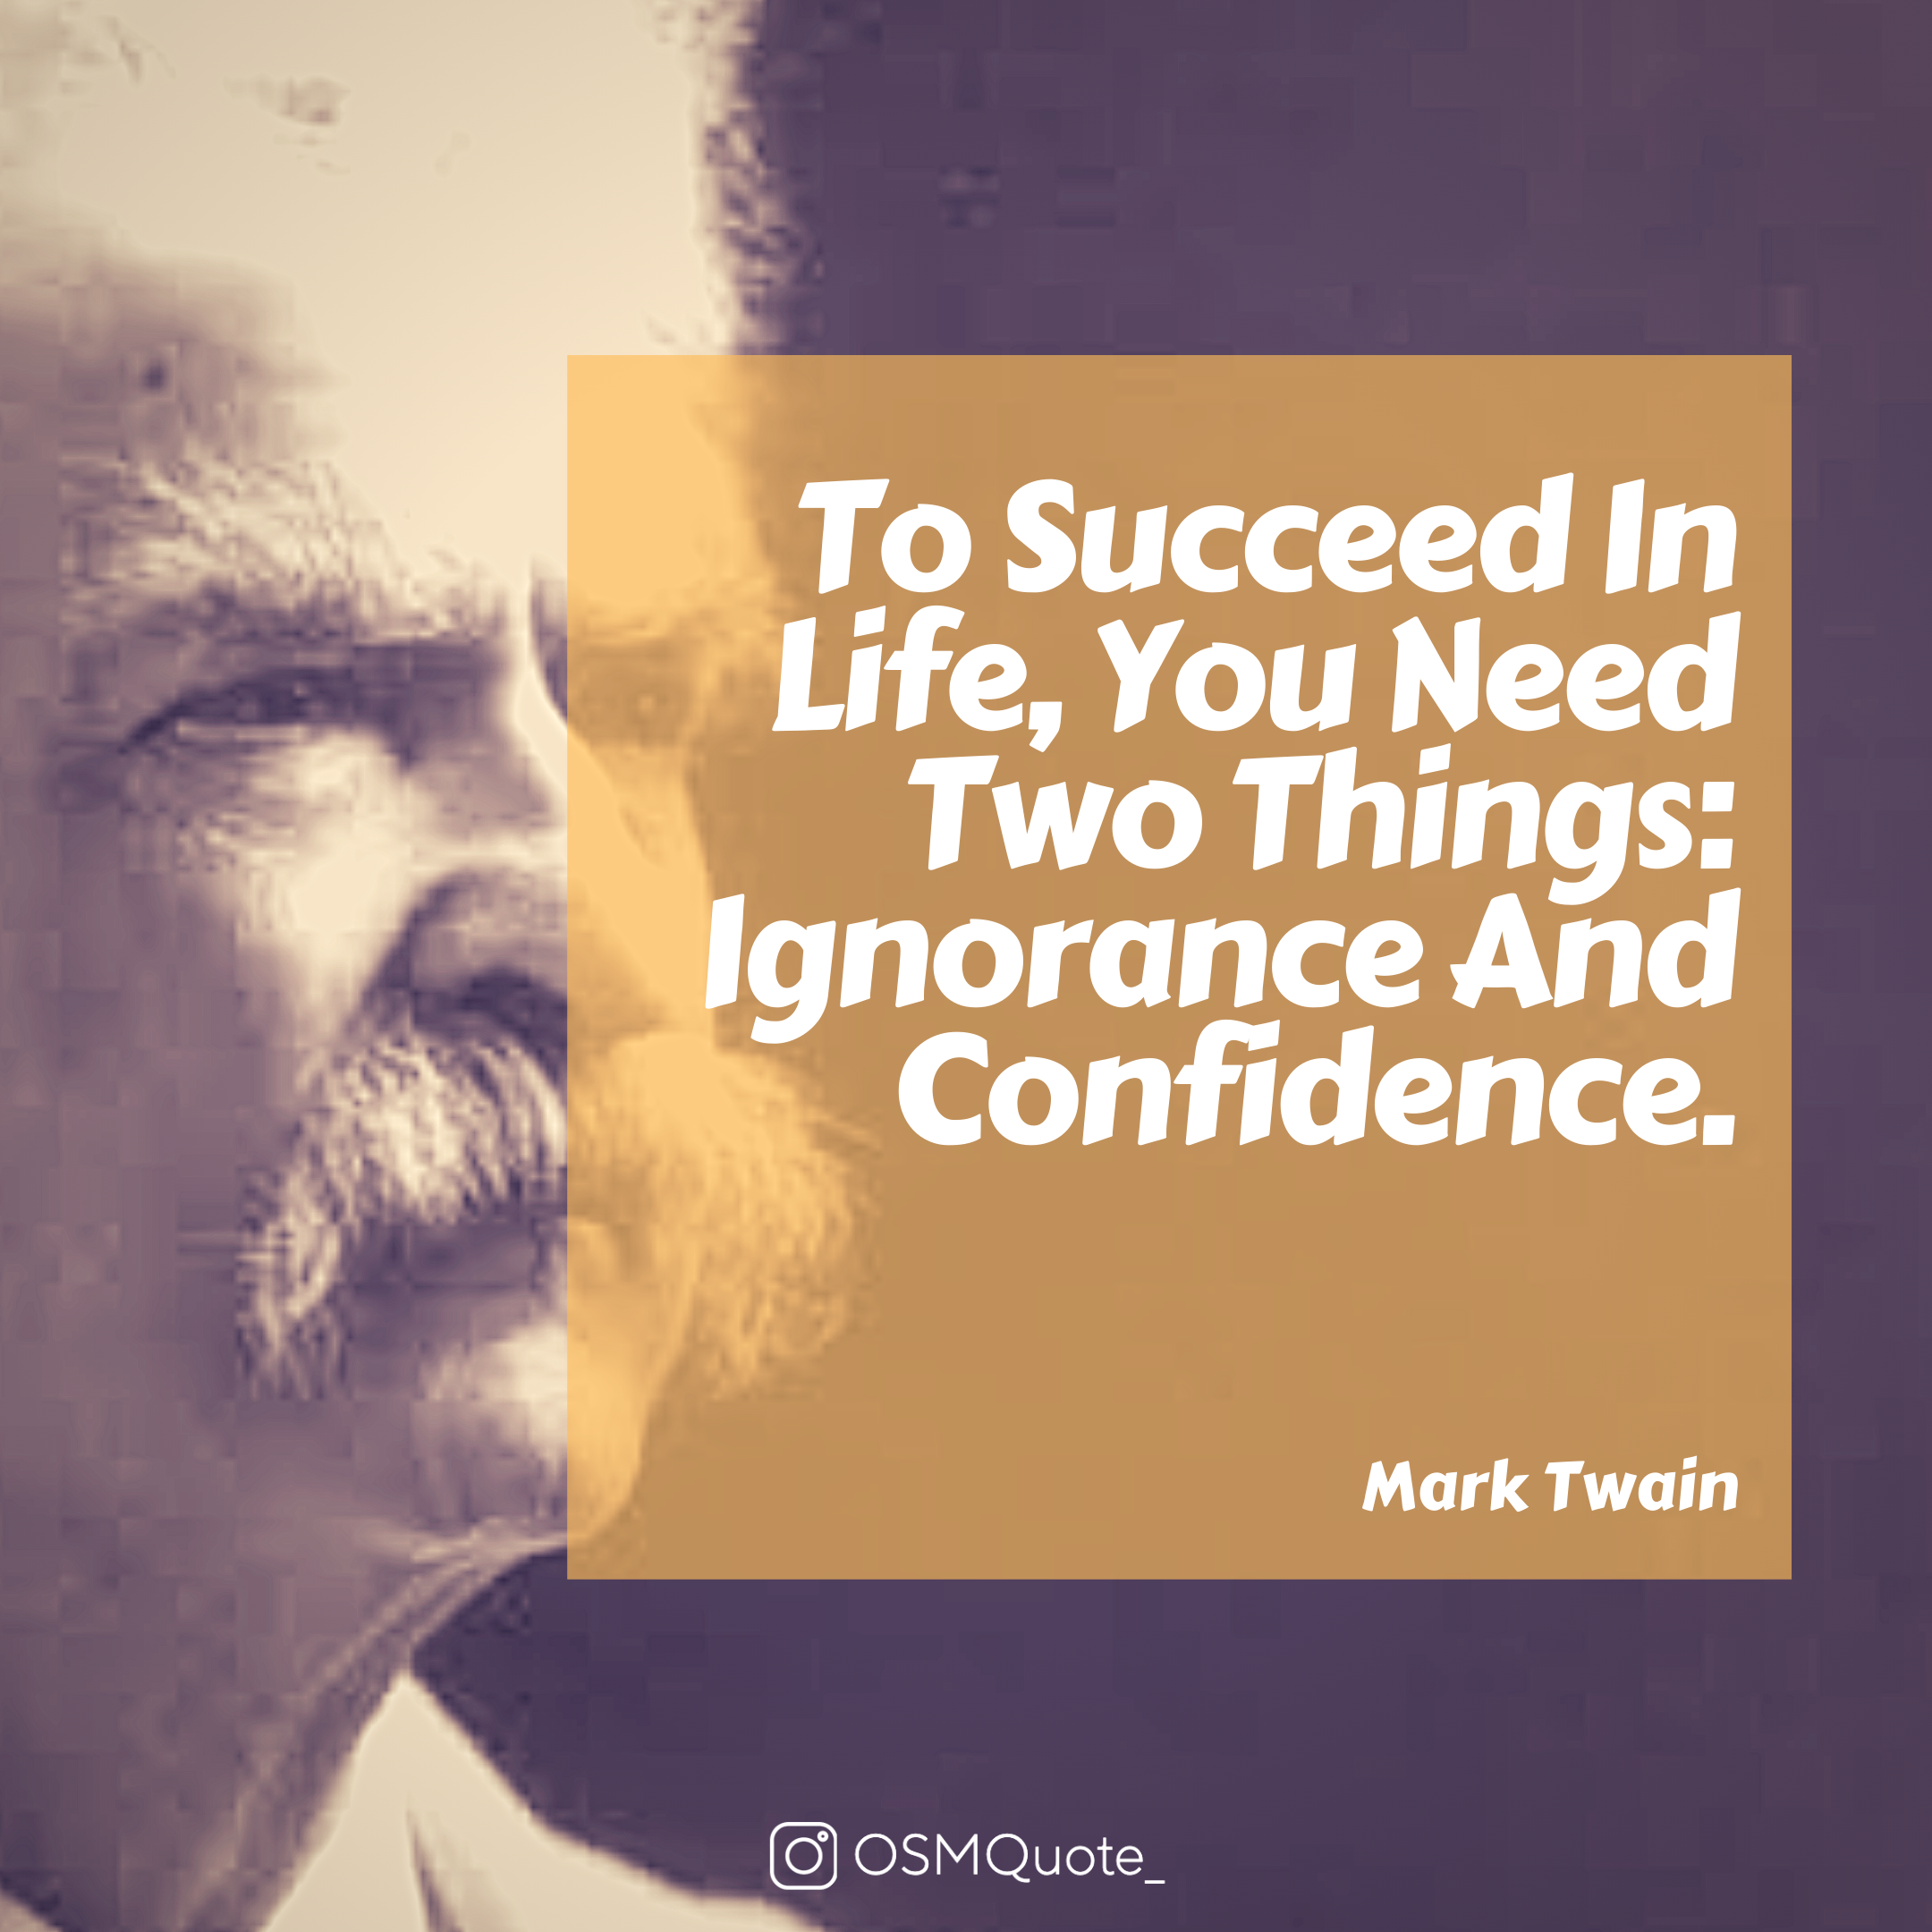 To Succeed In Life, You Need Two Things: Ignorance And Confidence. – Mark Twain (2160×2160)